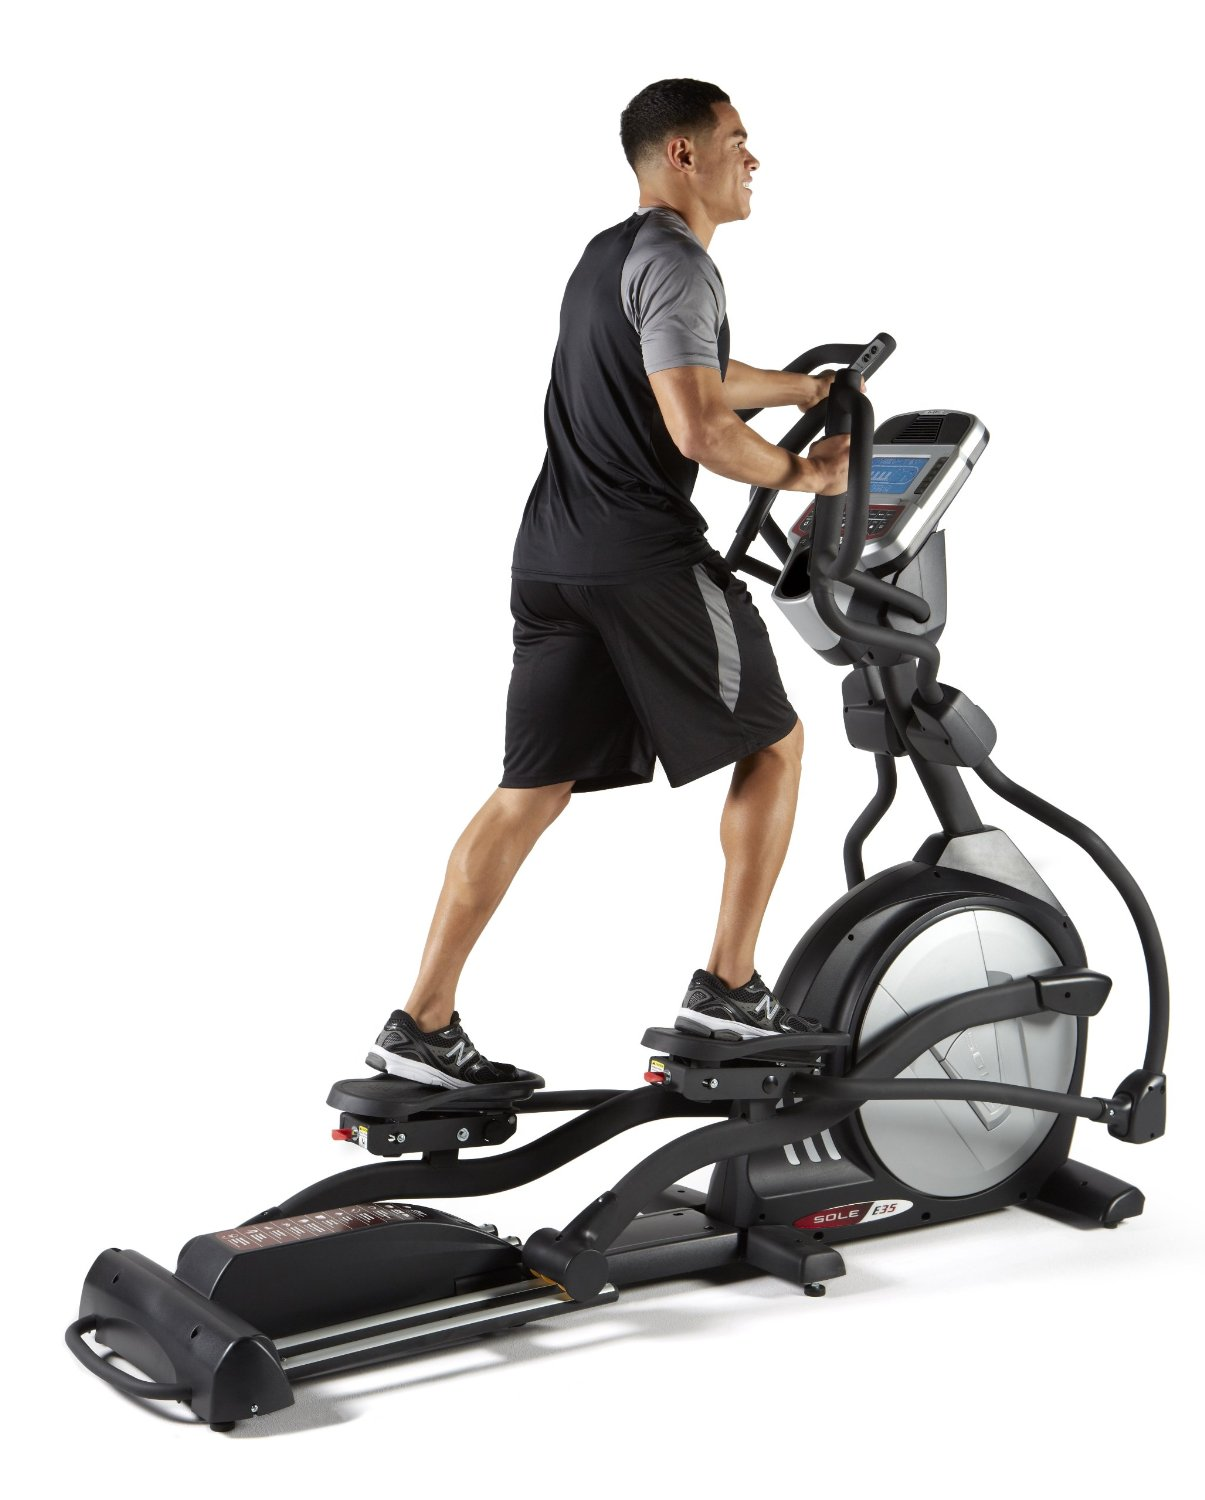 Best Elliptical Machine 2019 reviews-Must READ This before buying!